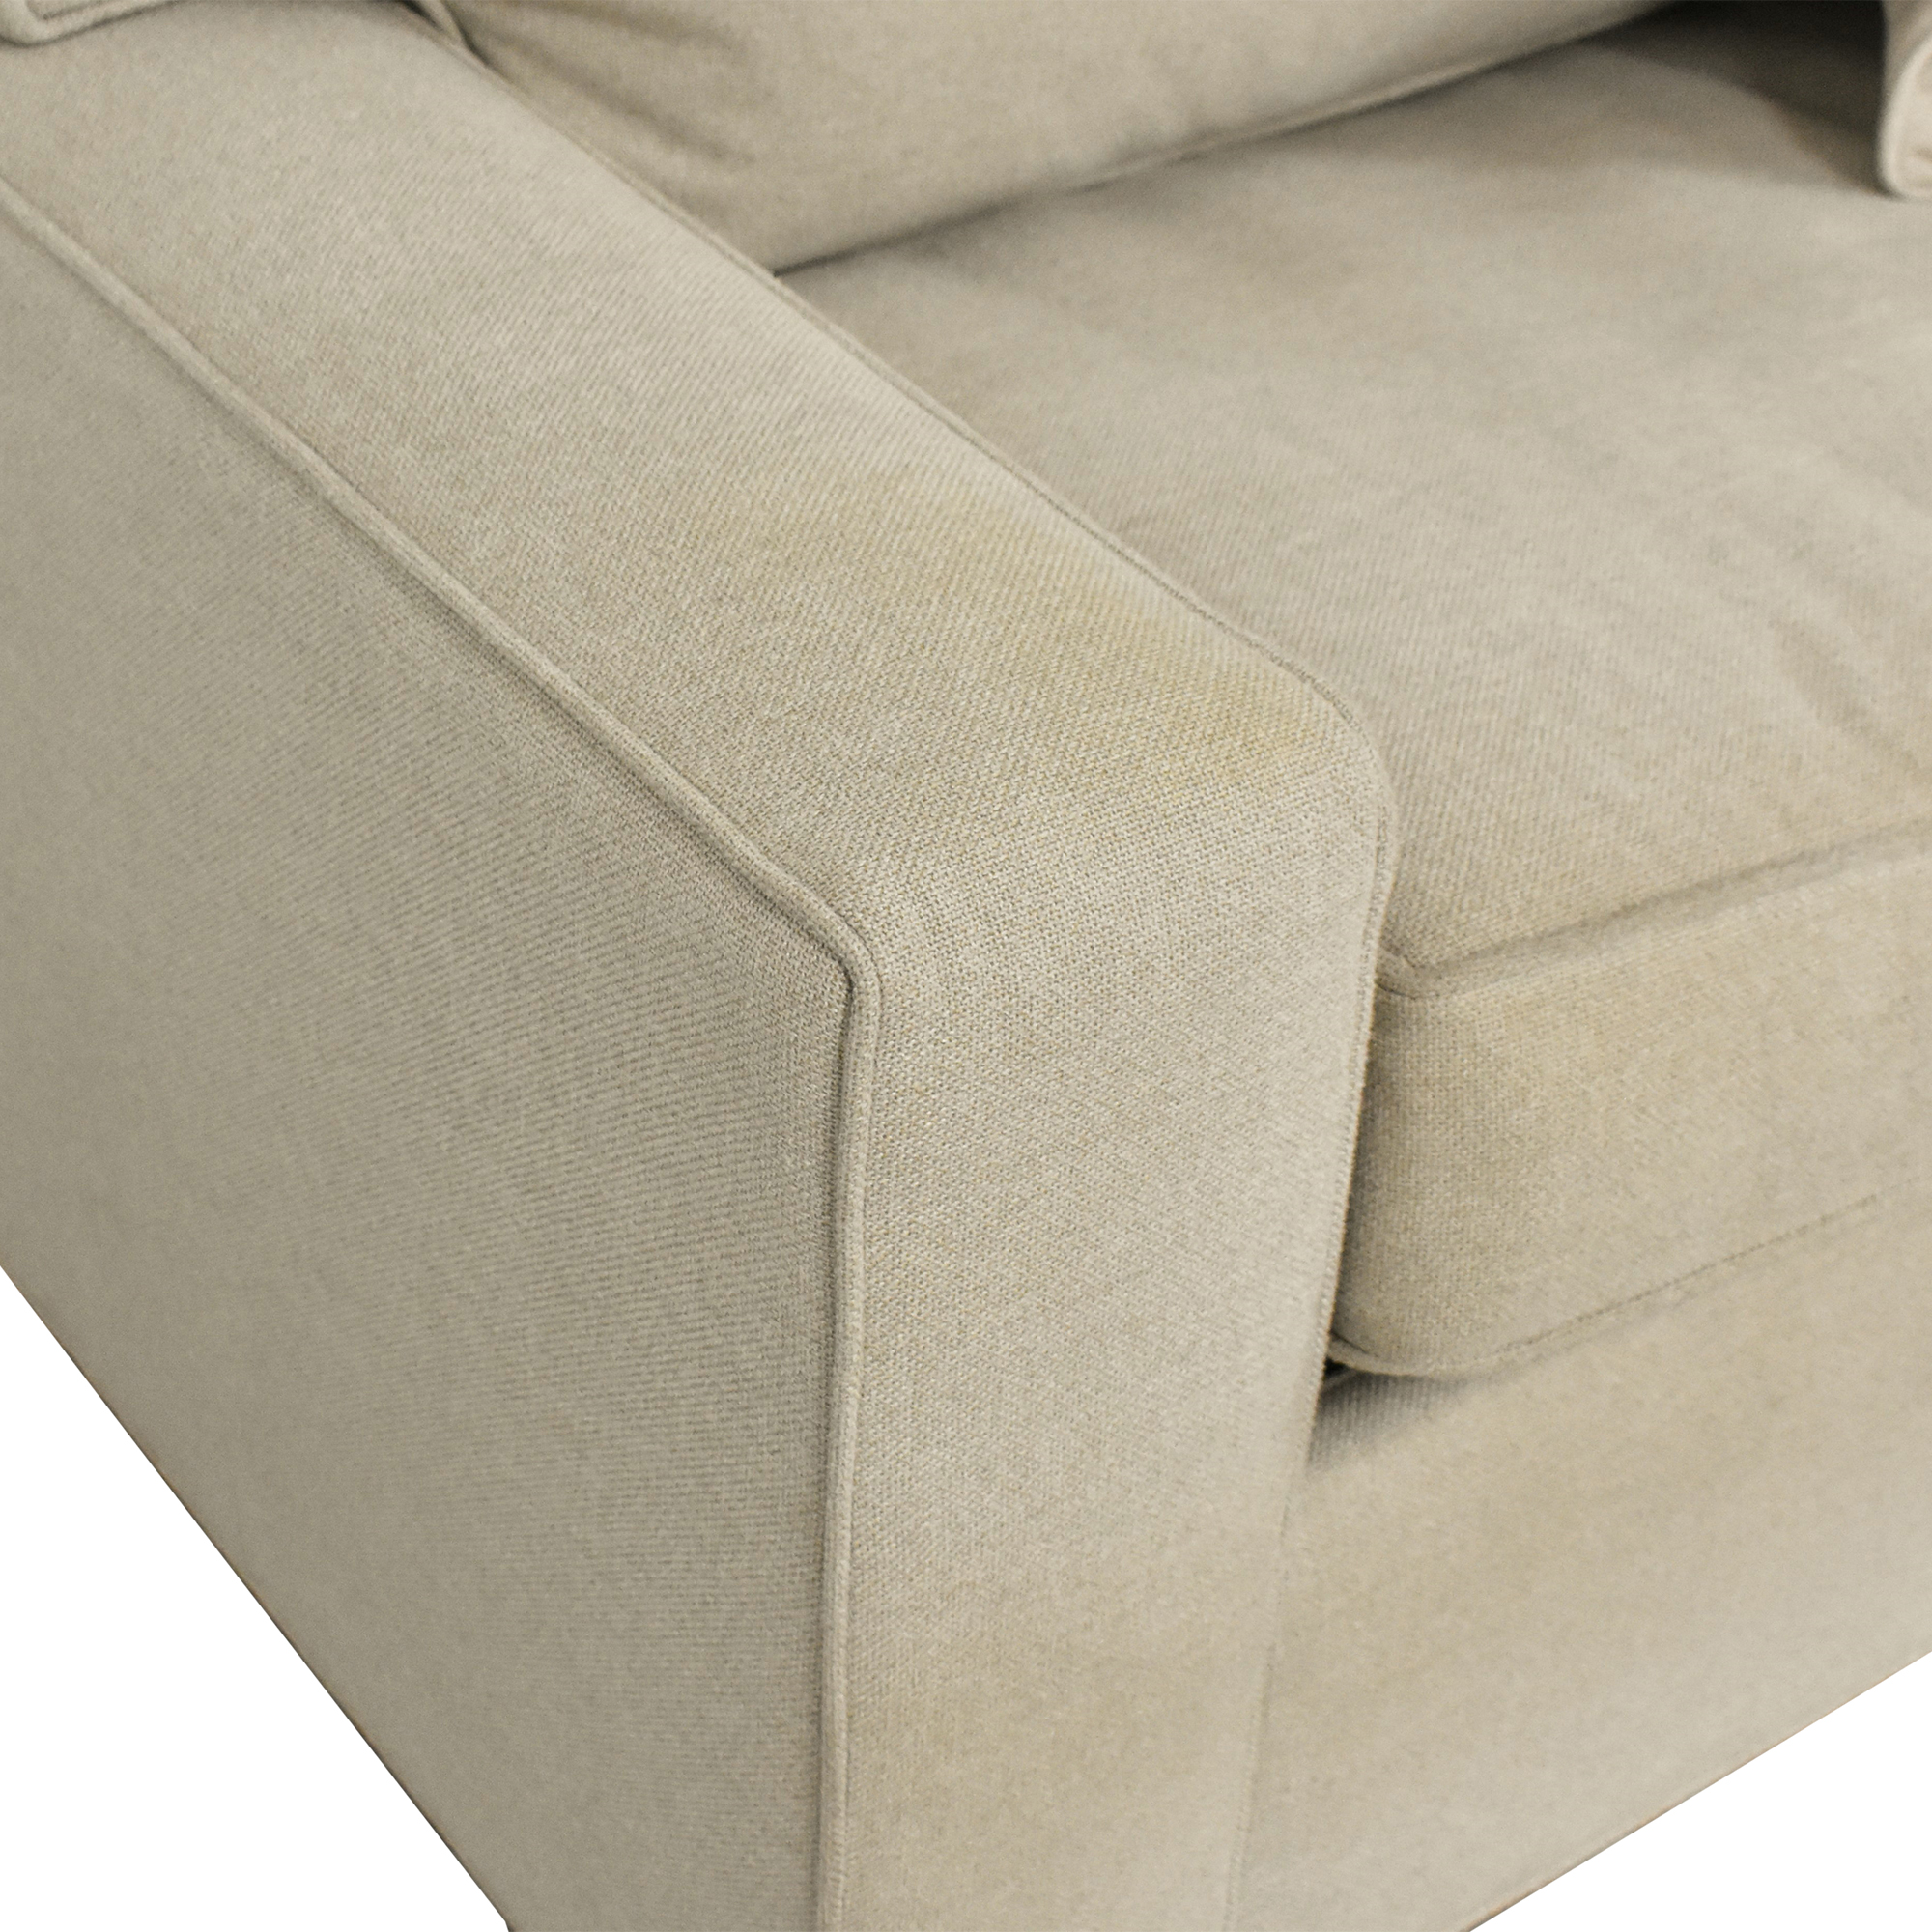 shop Mitchell Gold + Bob Williams Sectional Sleeper Sofa Mitchell Gold + Bob Williams Sofas